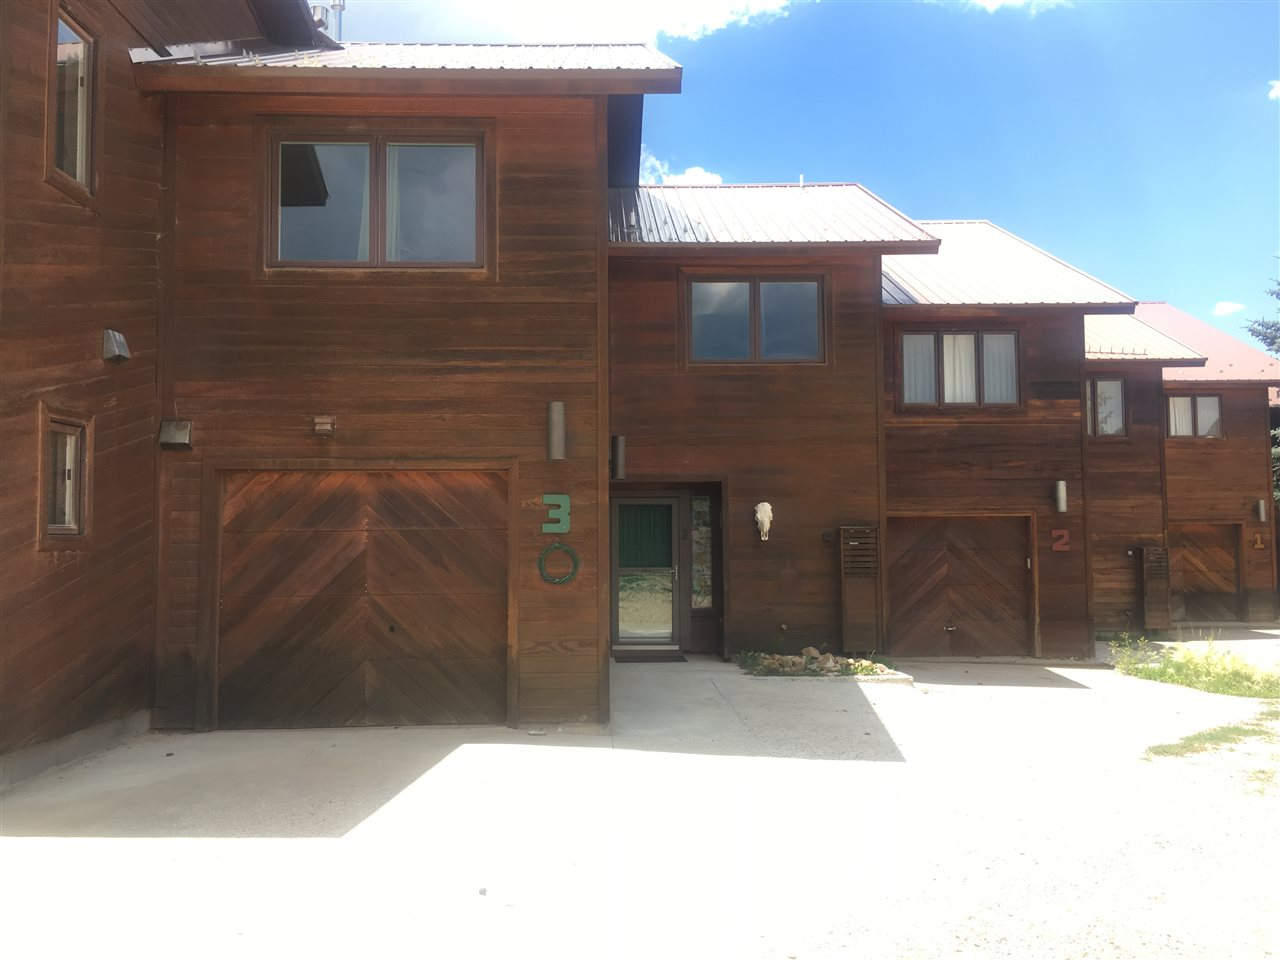 Convenient location just off North Angel Fire Rd, walk everywhere! This 3 bedroom, 2.5 bathroom townhouse is one of 7. This has a large living area with rock detailing fireplace. Great sun-soaked deck with views to the resort. Comes complete with a single garage for all of your mountain toys. No HOA fees.